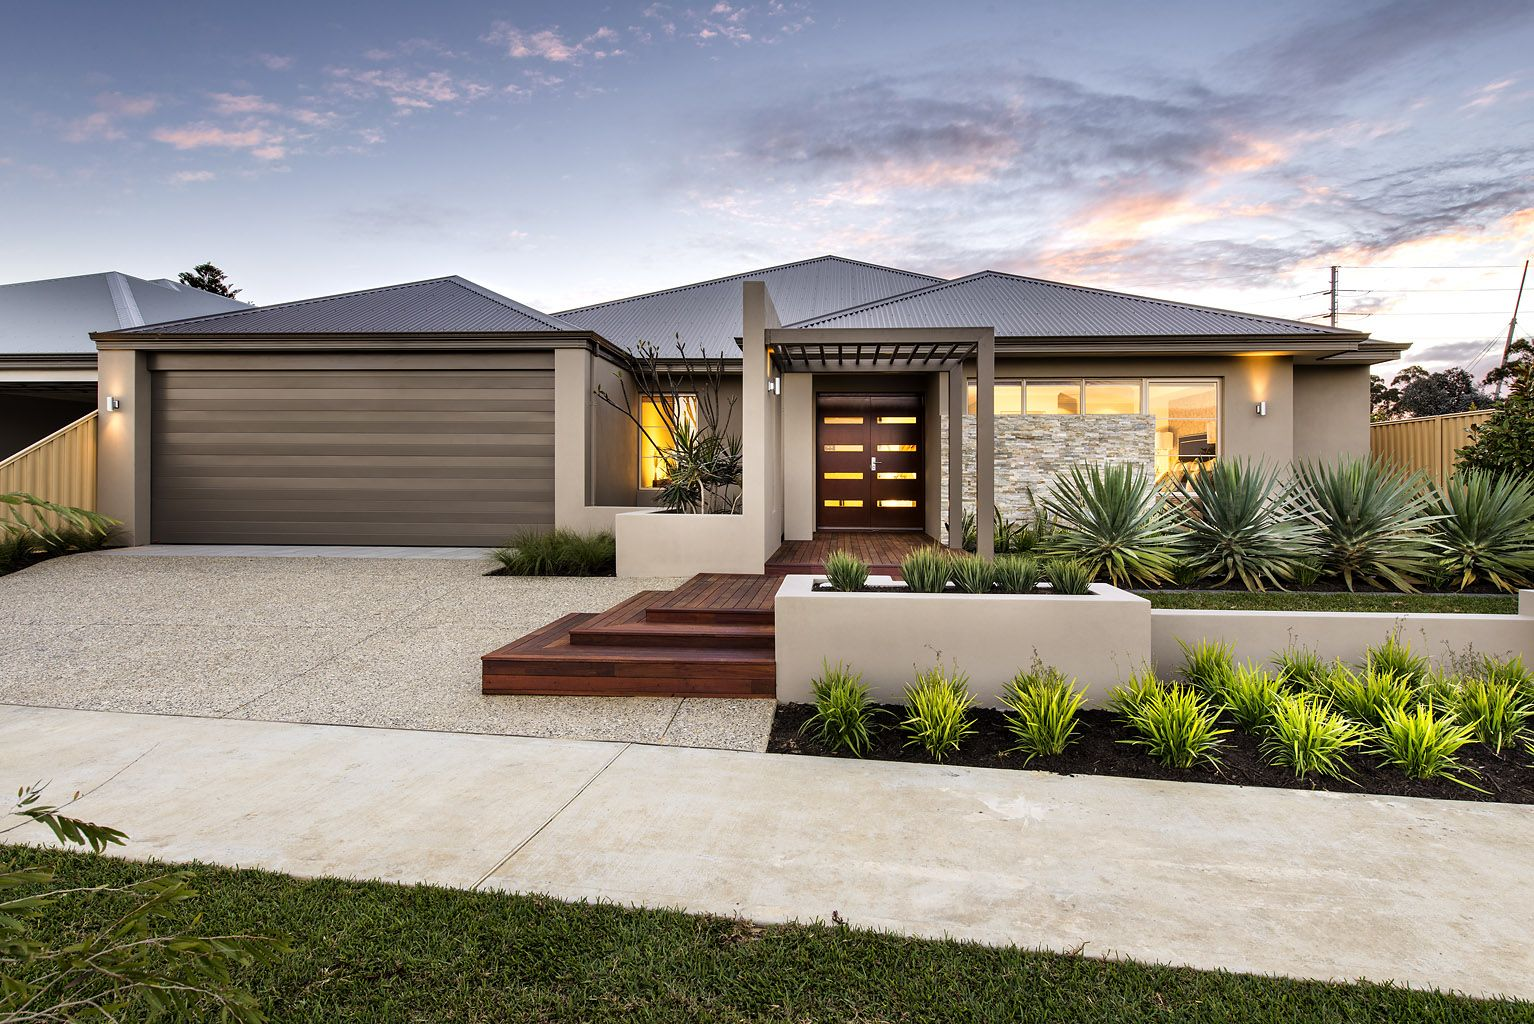 Glen Iris, The Riverlea Display from Aveling Homes #modernfrontyard